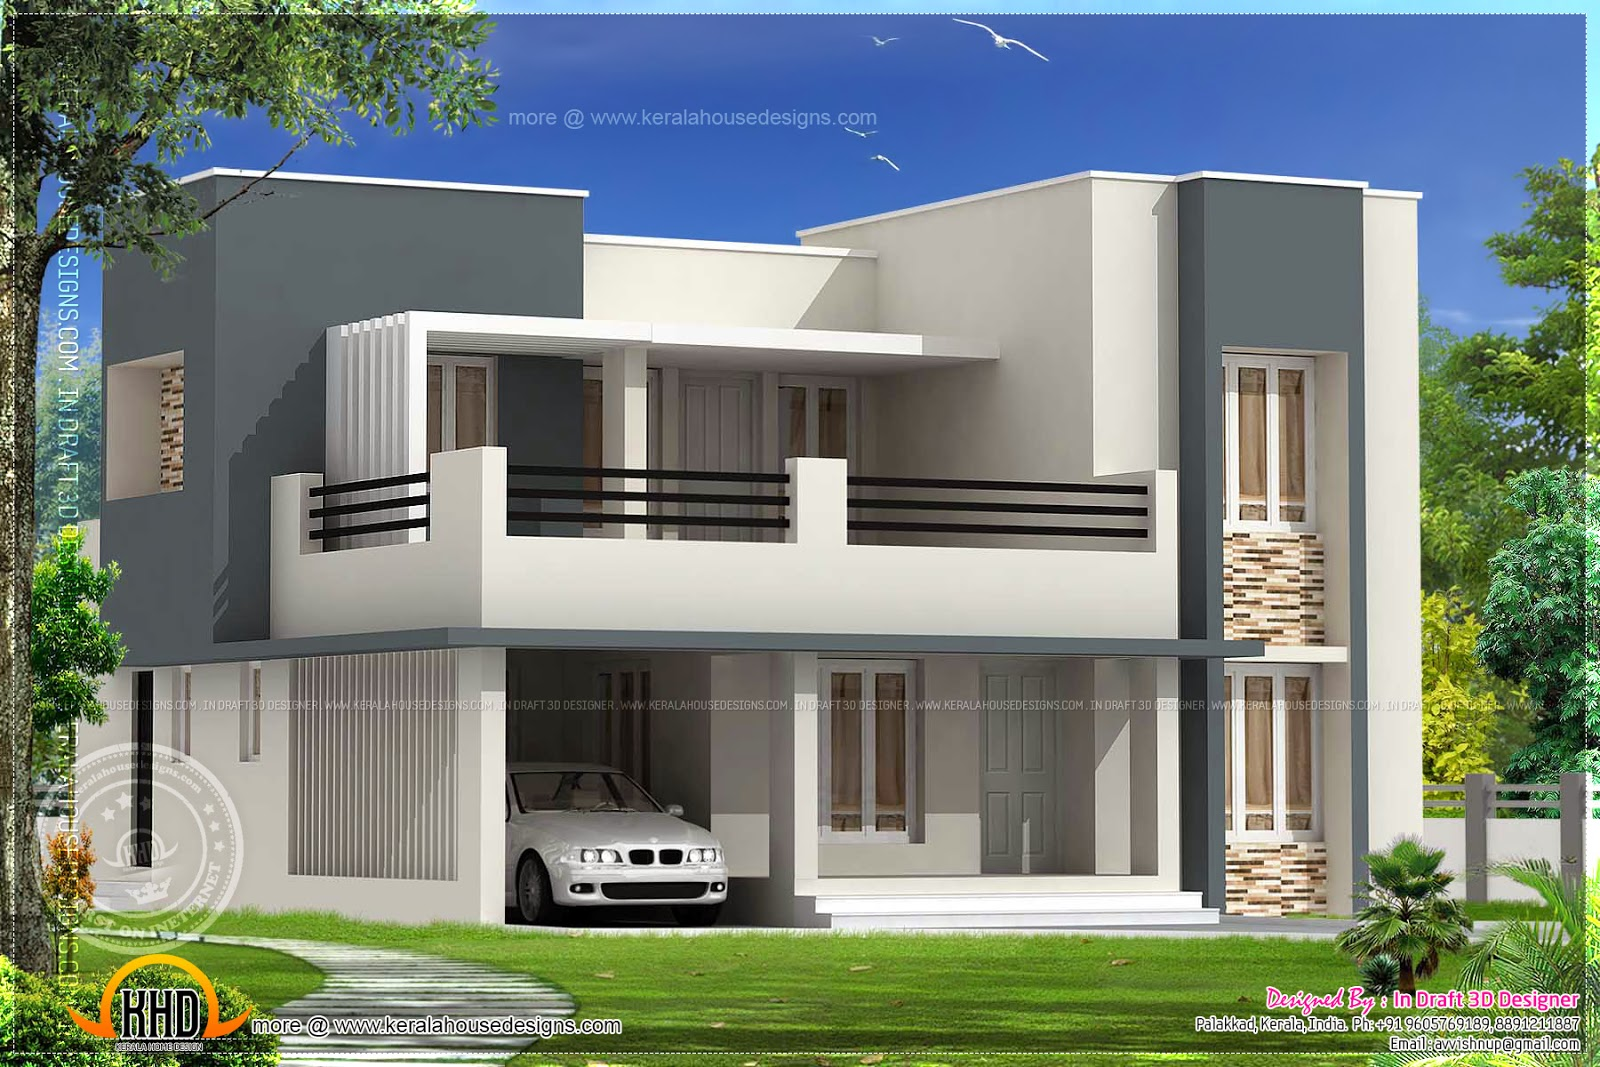 2180 square feet house exterior kerala home design and floor plans - Houses atticsquare meters ...